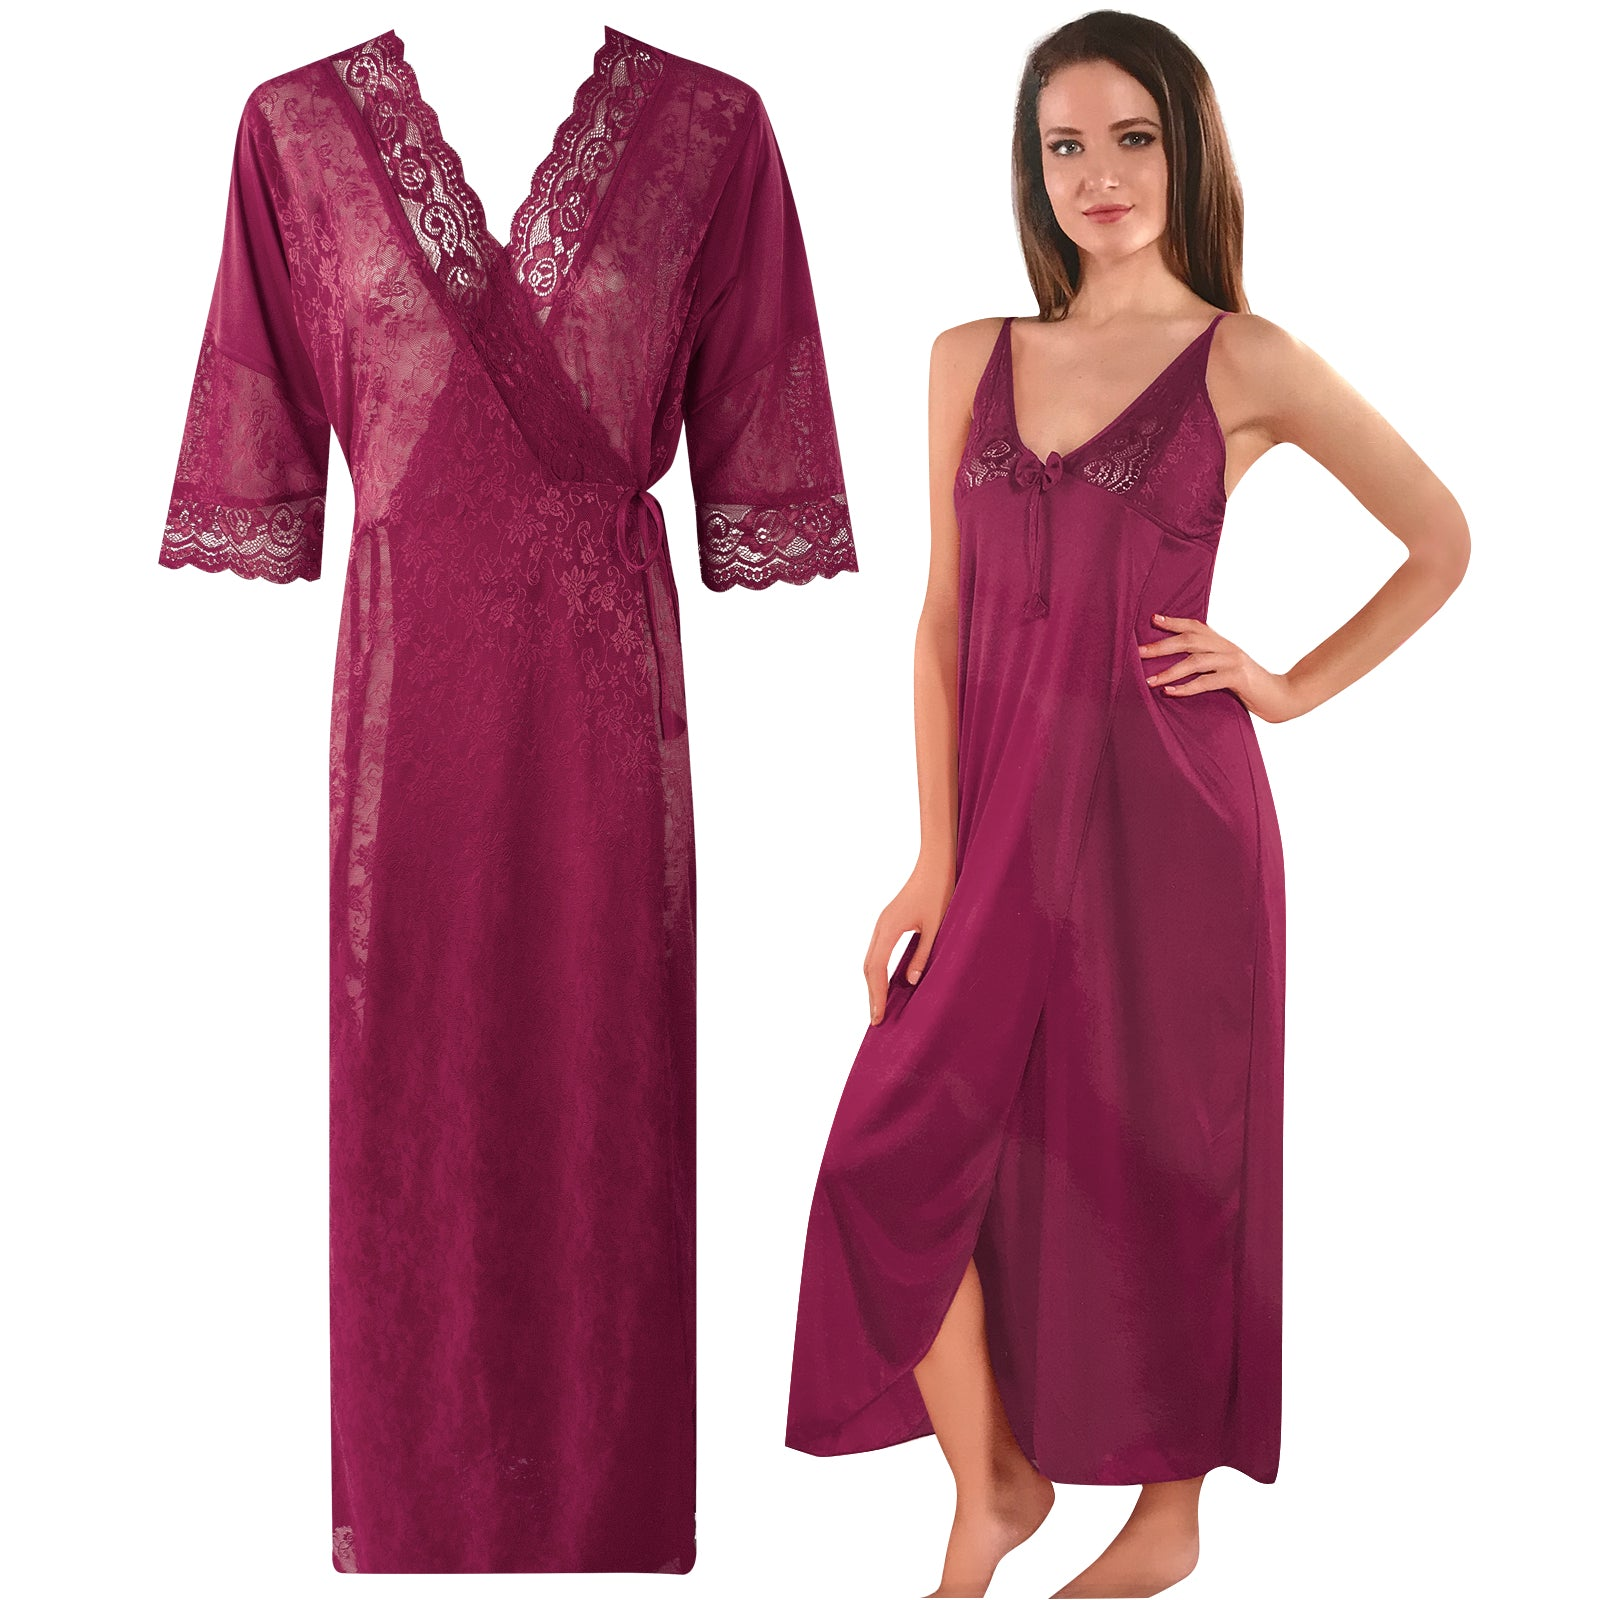 Womens 2 Pcs Satin Nightdress and Robe [colour]- Hautie UK, #Nightfashion | #Underfashion  SIZE 8 10 12 14 16 WINE